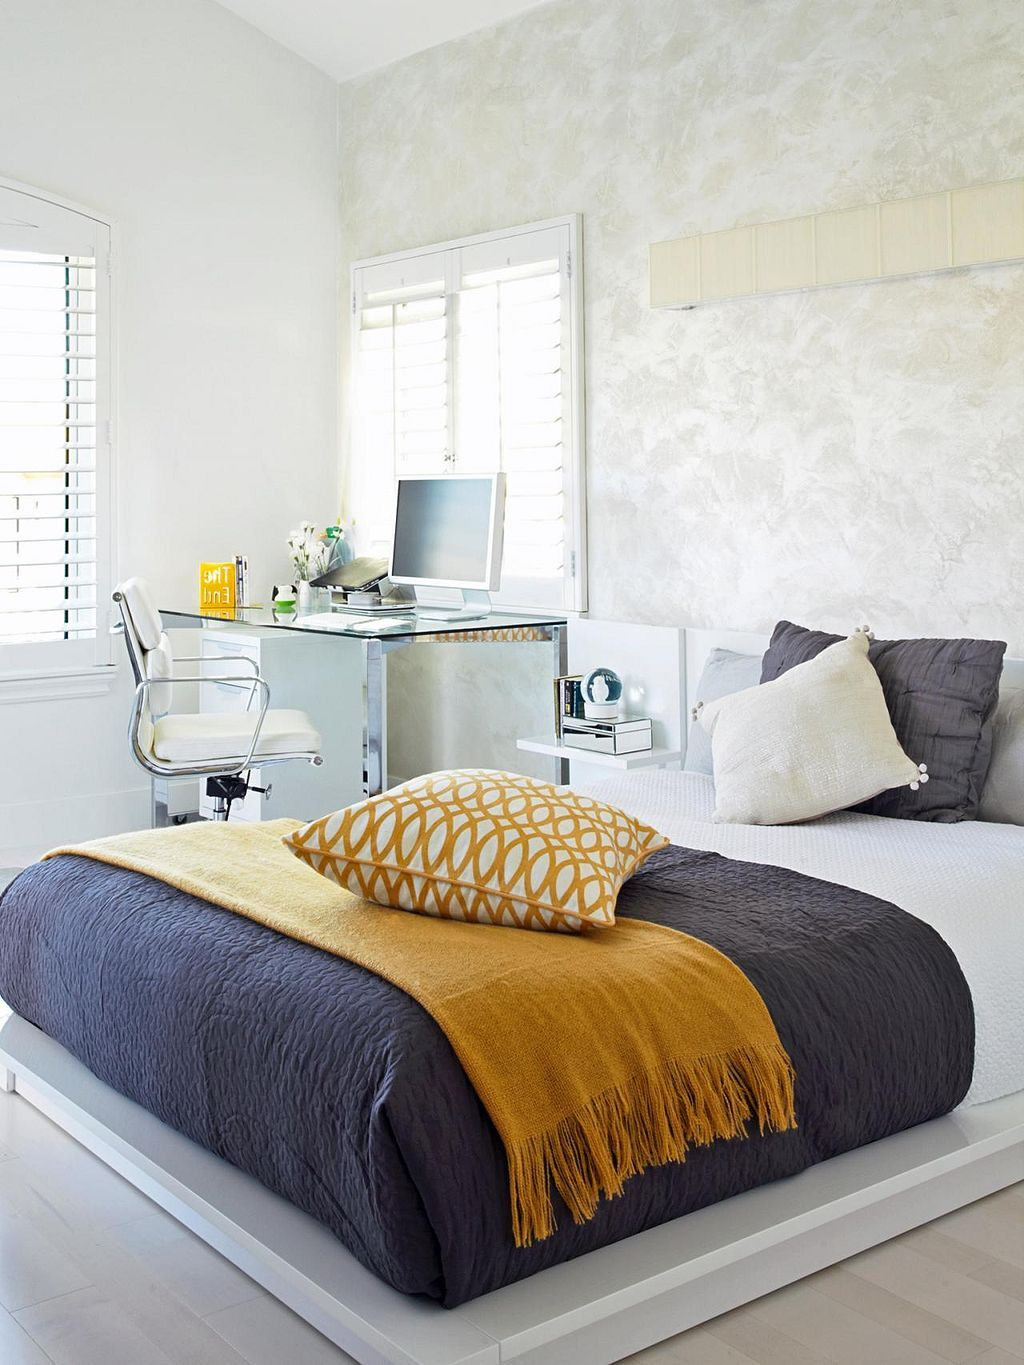 Grey And Mustard Bedroom Decor  Functionalitiesnet